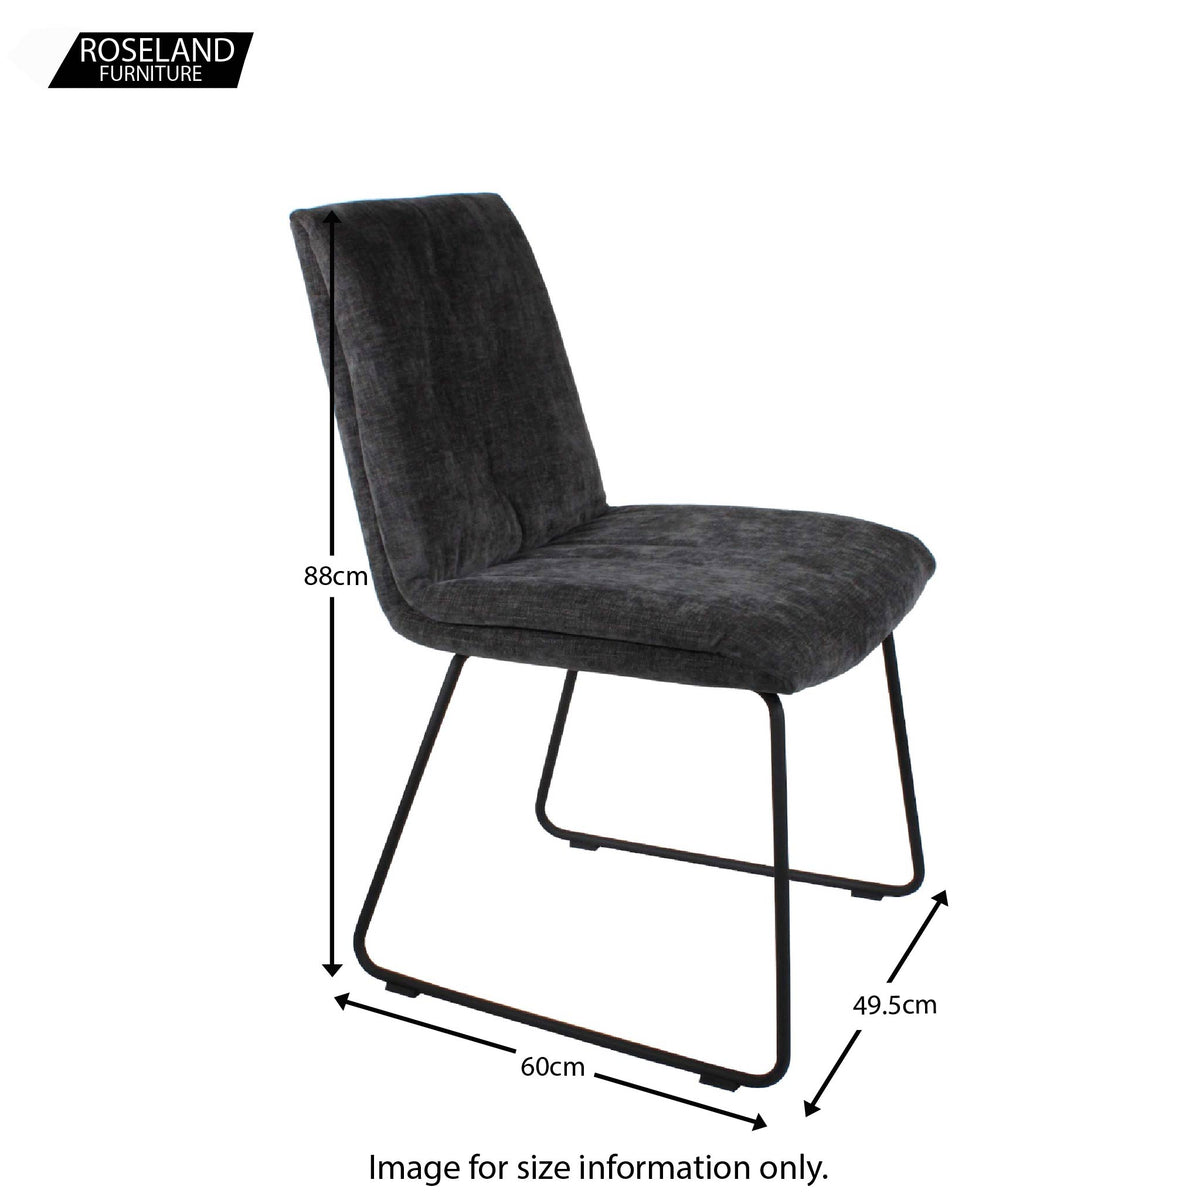 Dimensions for the Dark Grey Hadley Dining Chair from Roseland Furniture